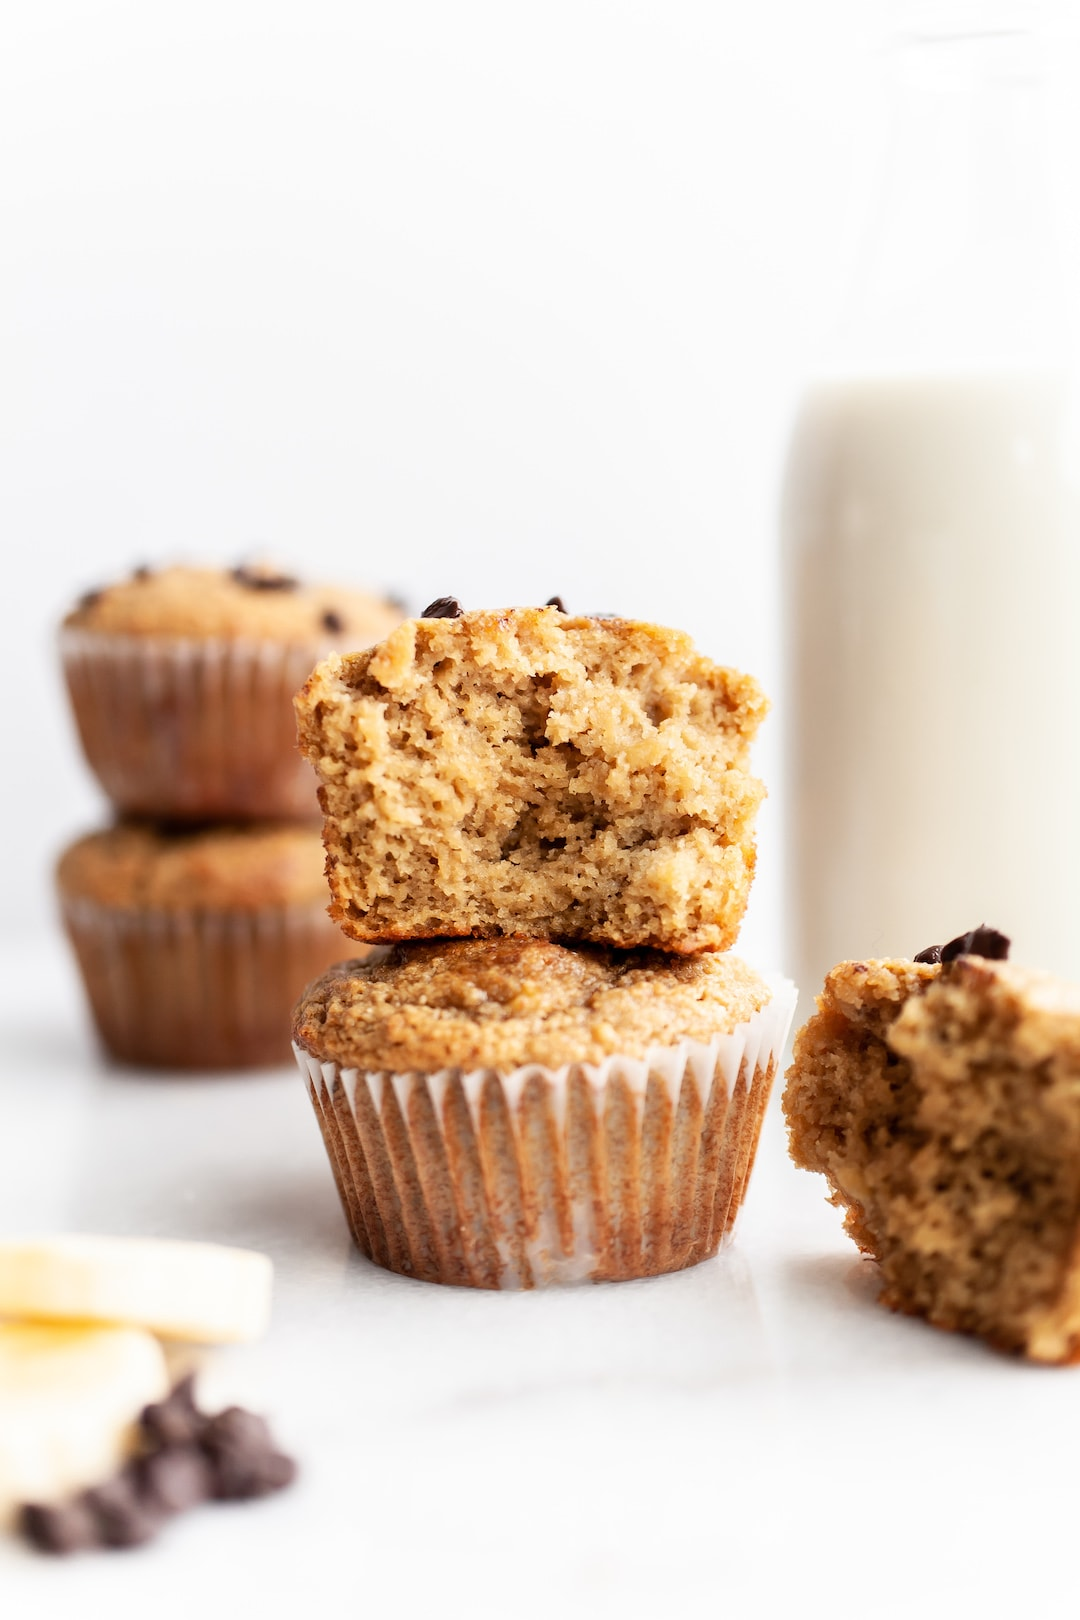 Close up of stack of two Easy Almond Flour Banana Muffins with one half eaten